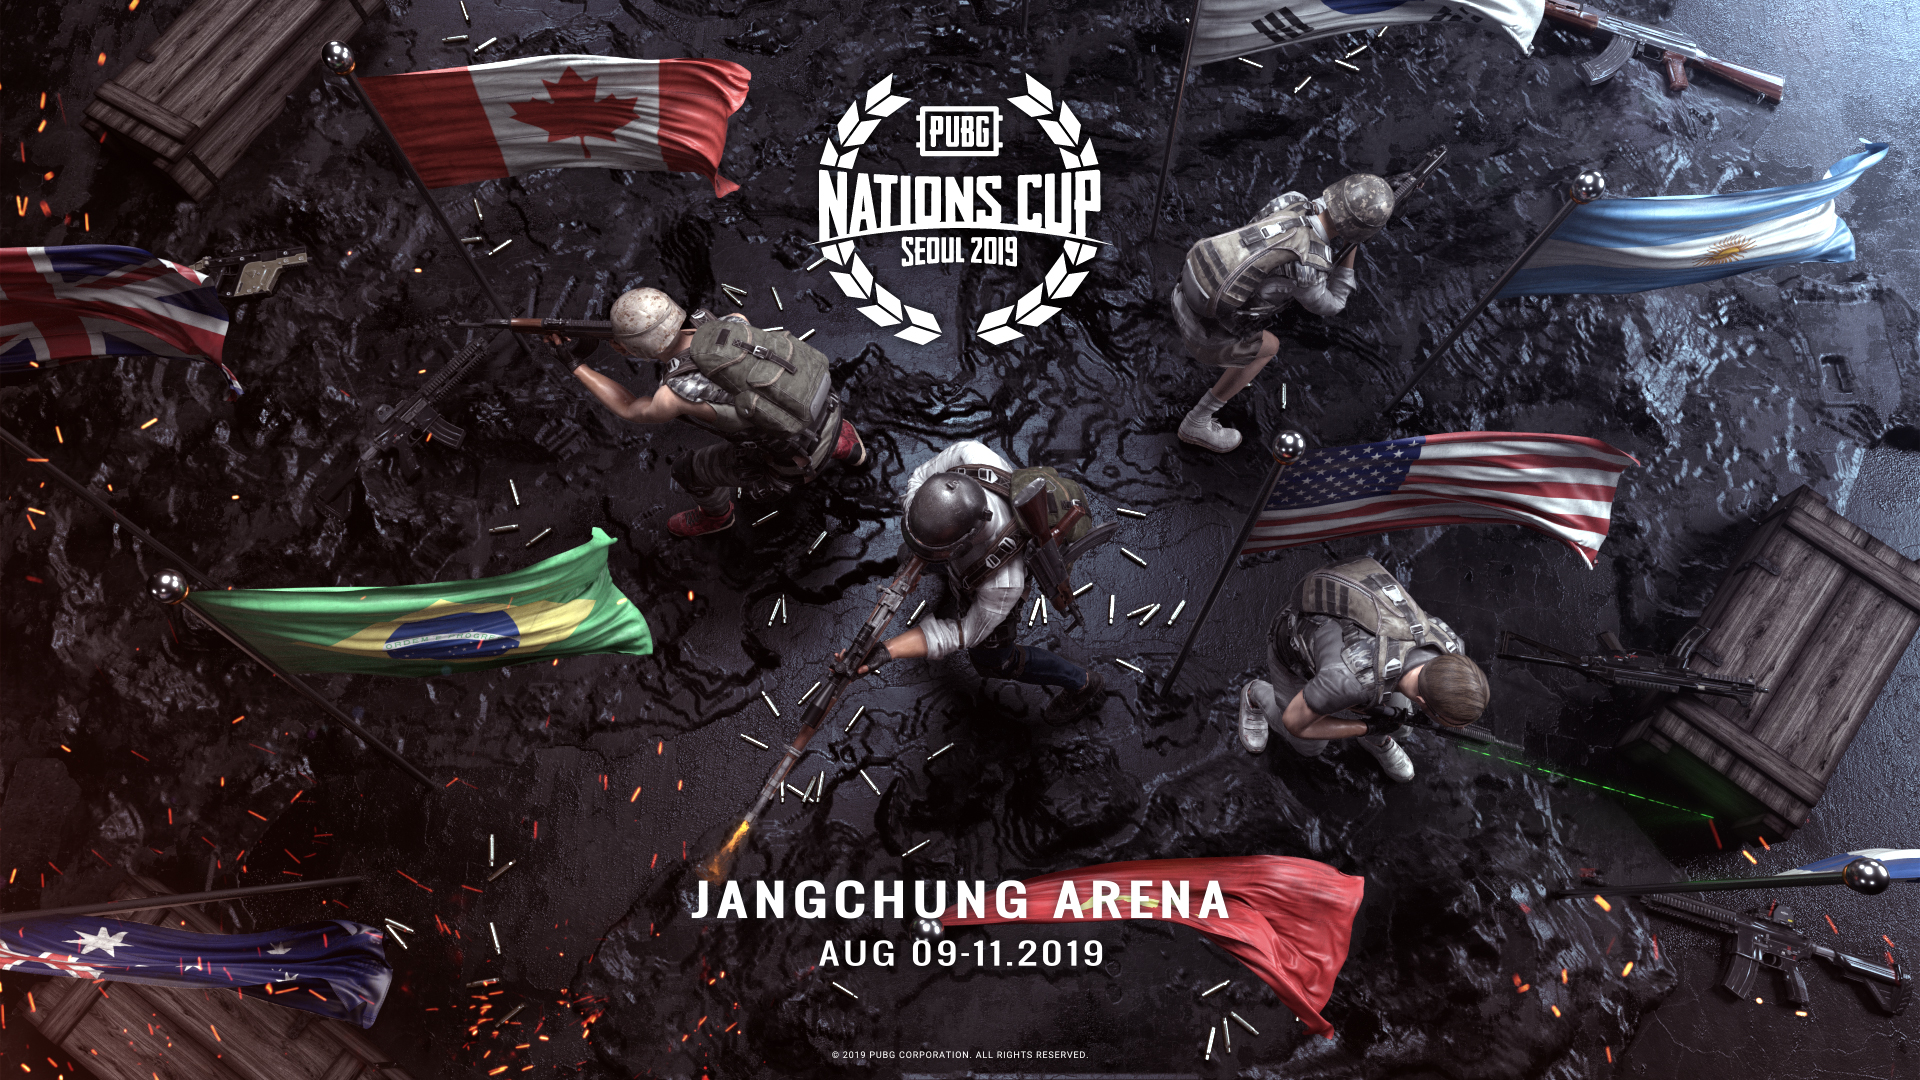 Collection of PUBG Nations Cup 2019 Wallpapers : CompetitivePUBG